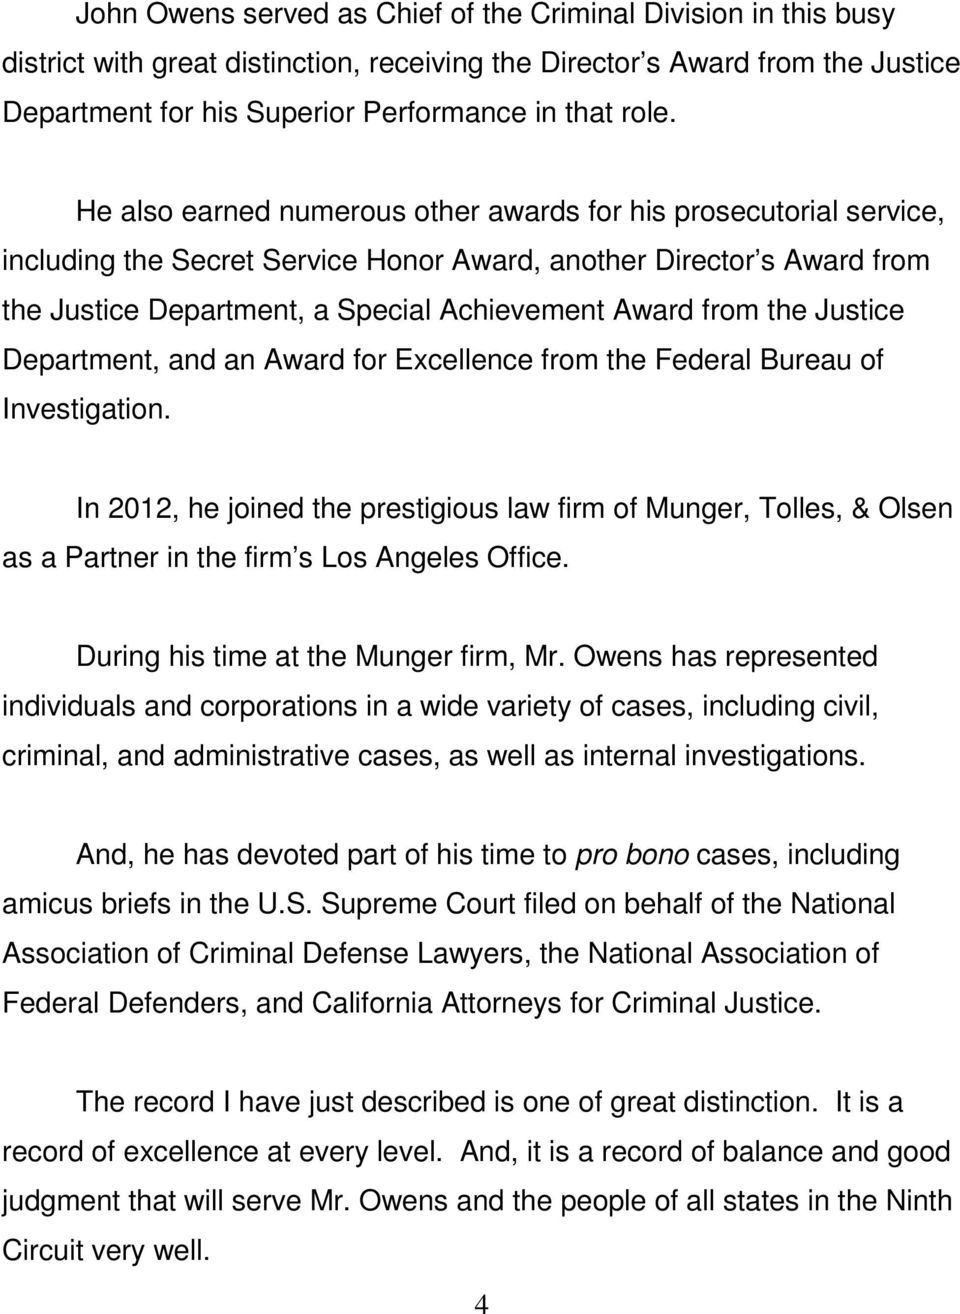 the Justice Department, and an Award for Excellence from the Federal Bureau of Investigation.